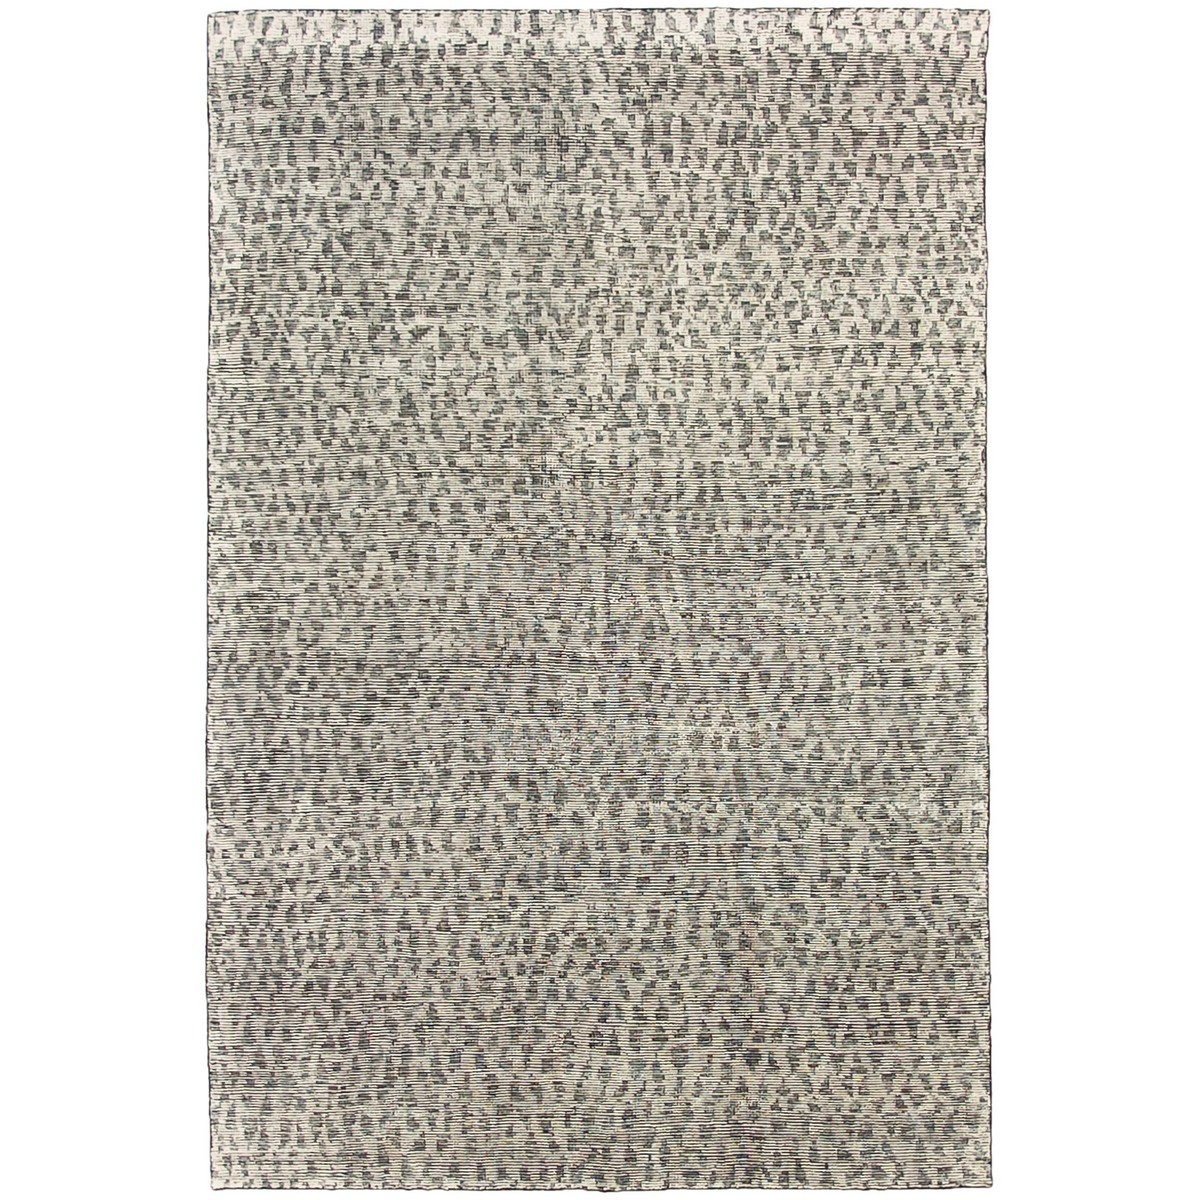 Deco Diamonds Hand Knotted Wool Rug, 300x400cm, Charcoal